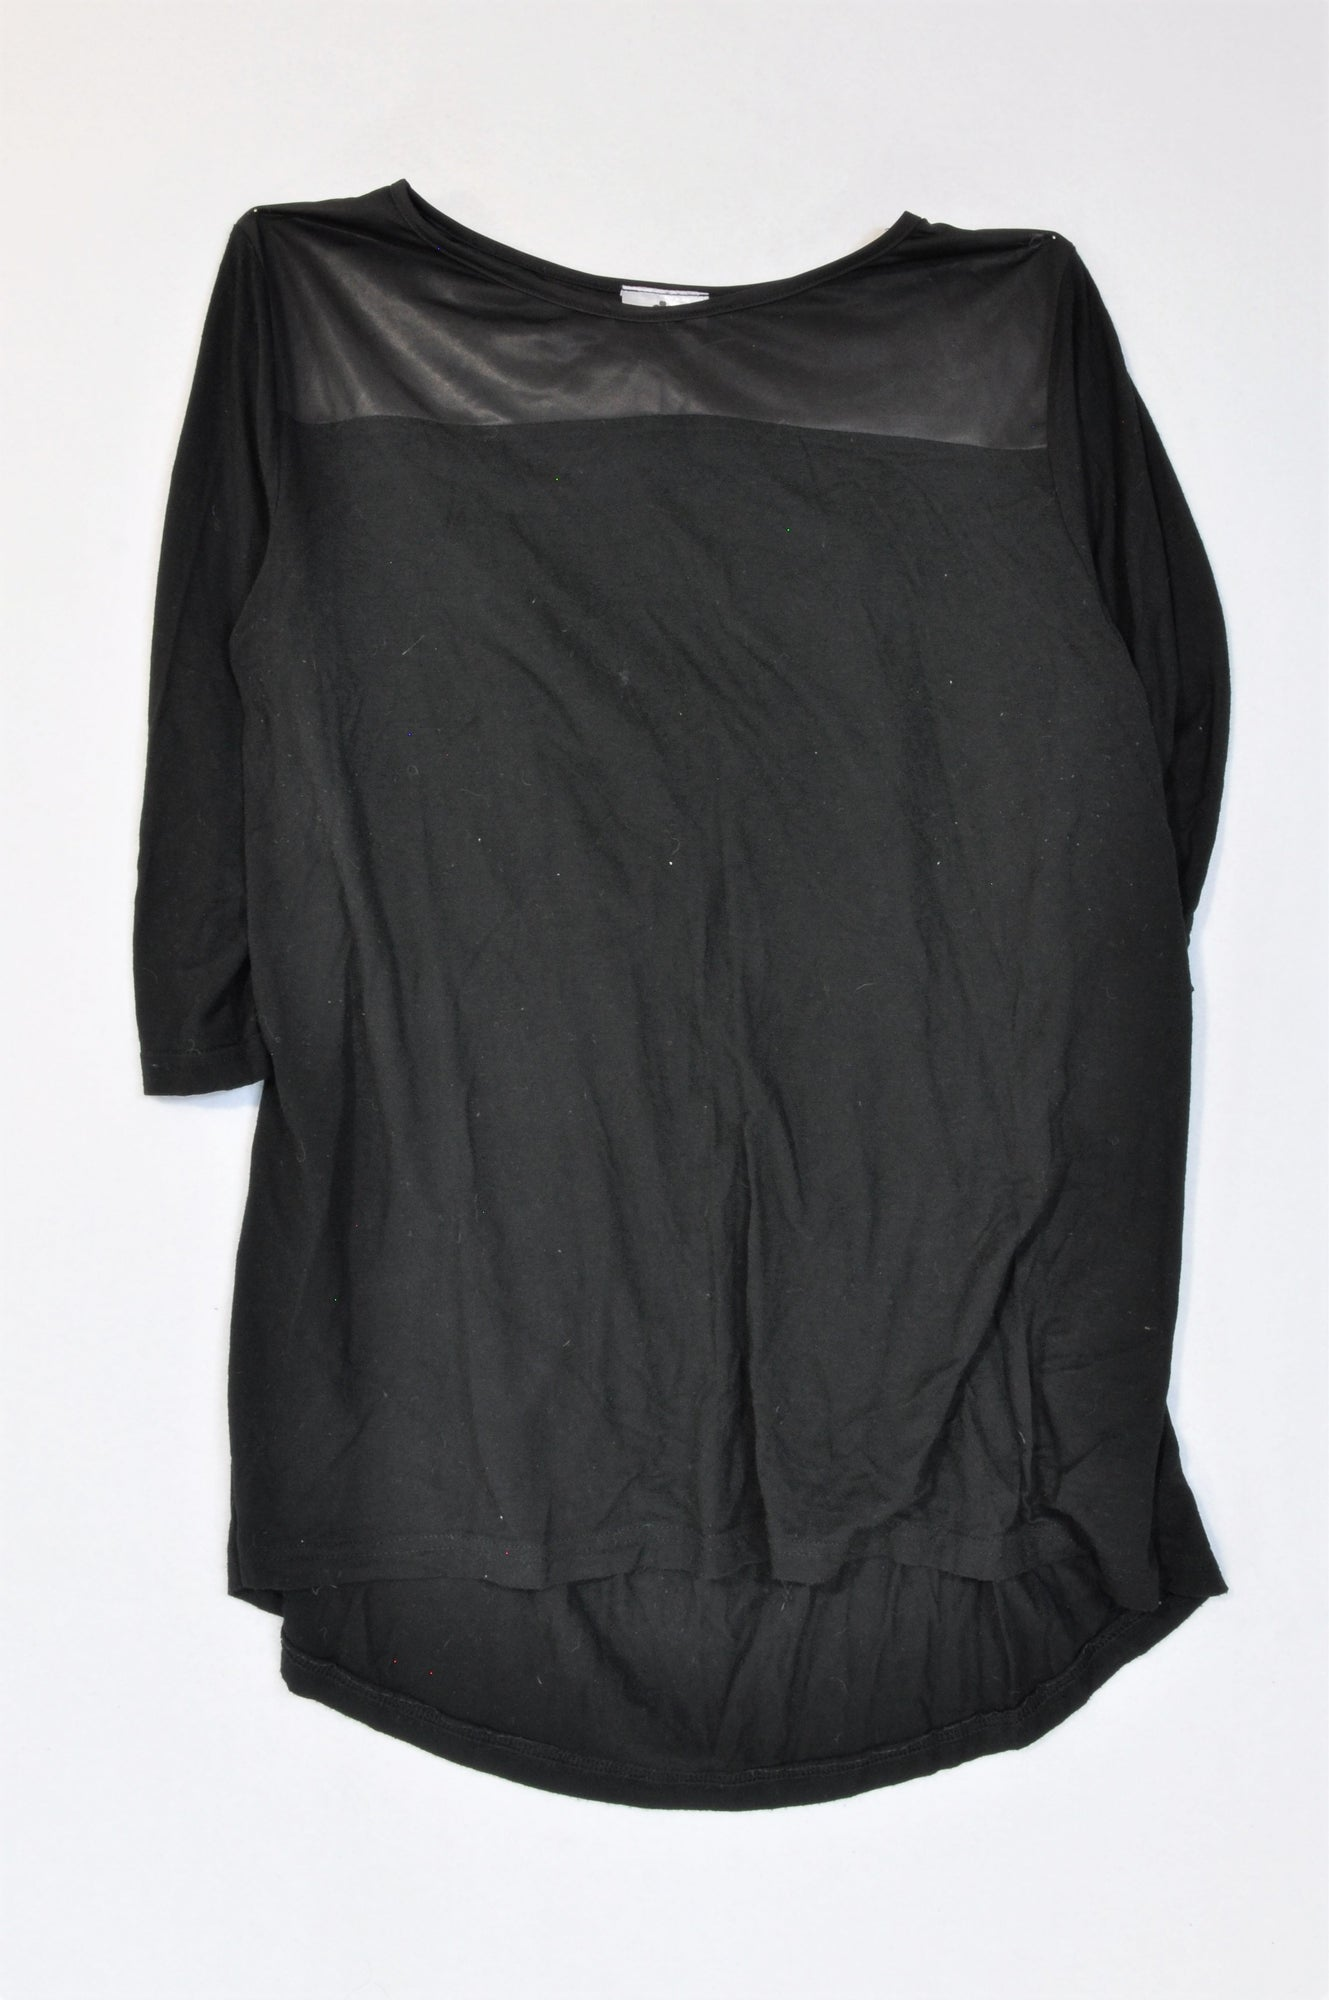 Monsoon Black Sateen Neckline Blouse Women Size 10